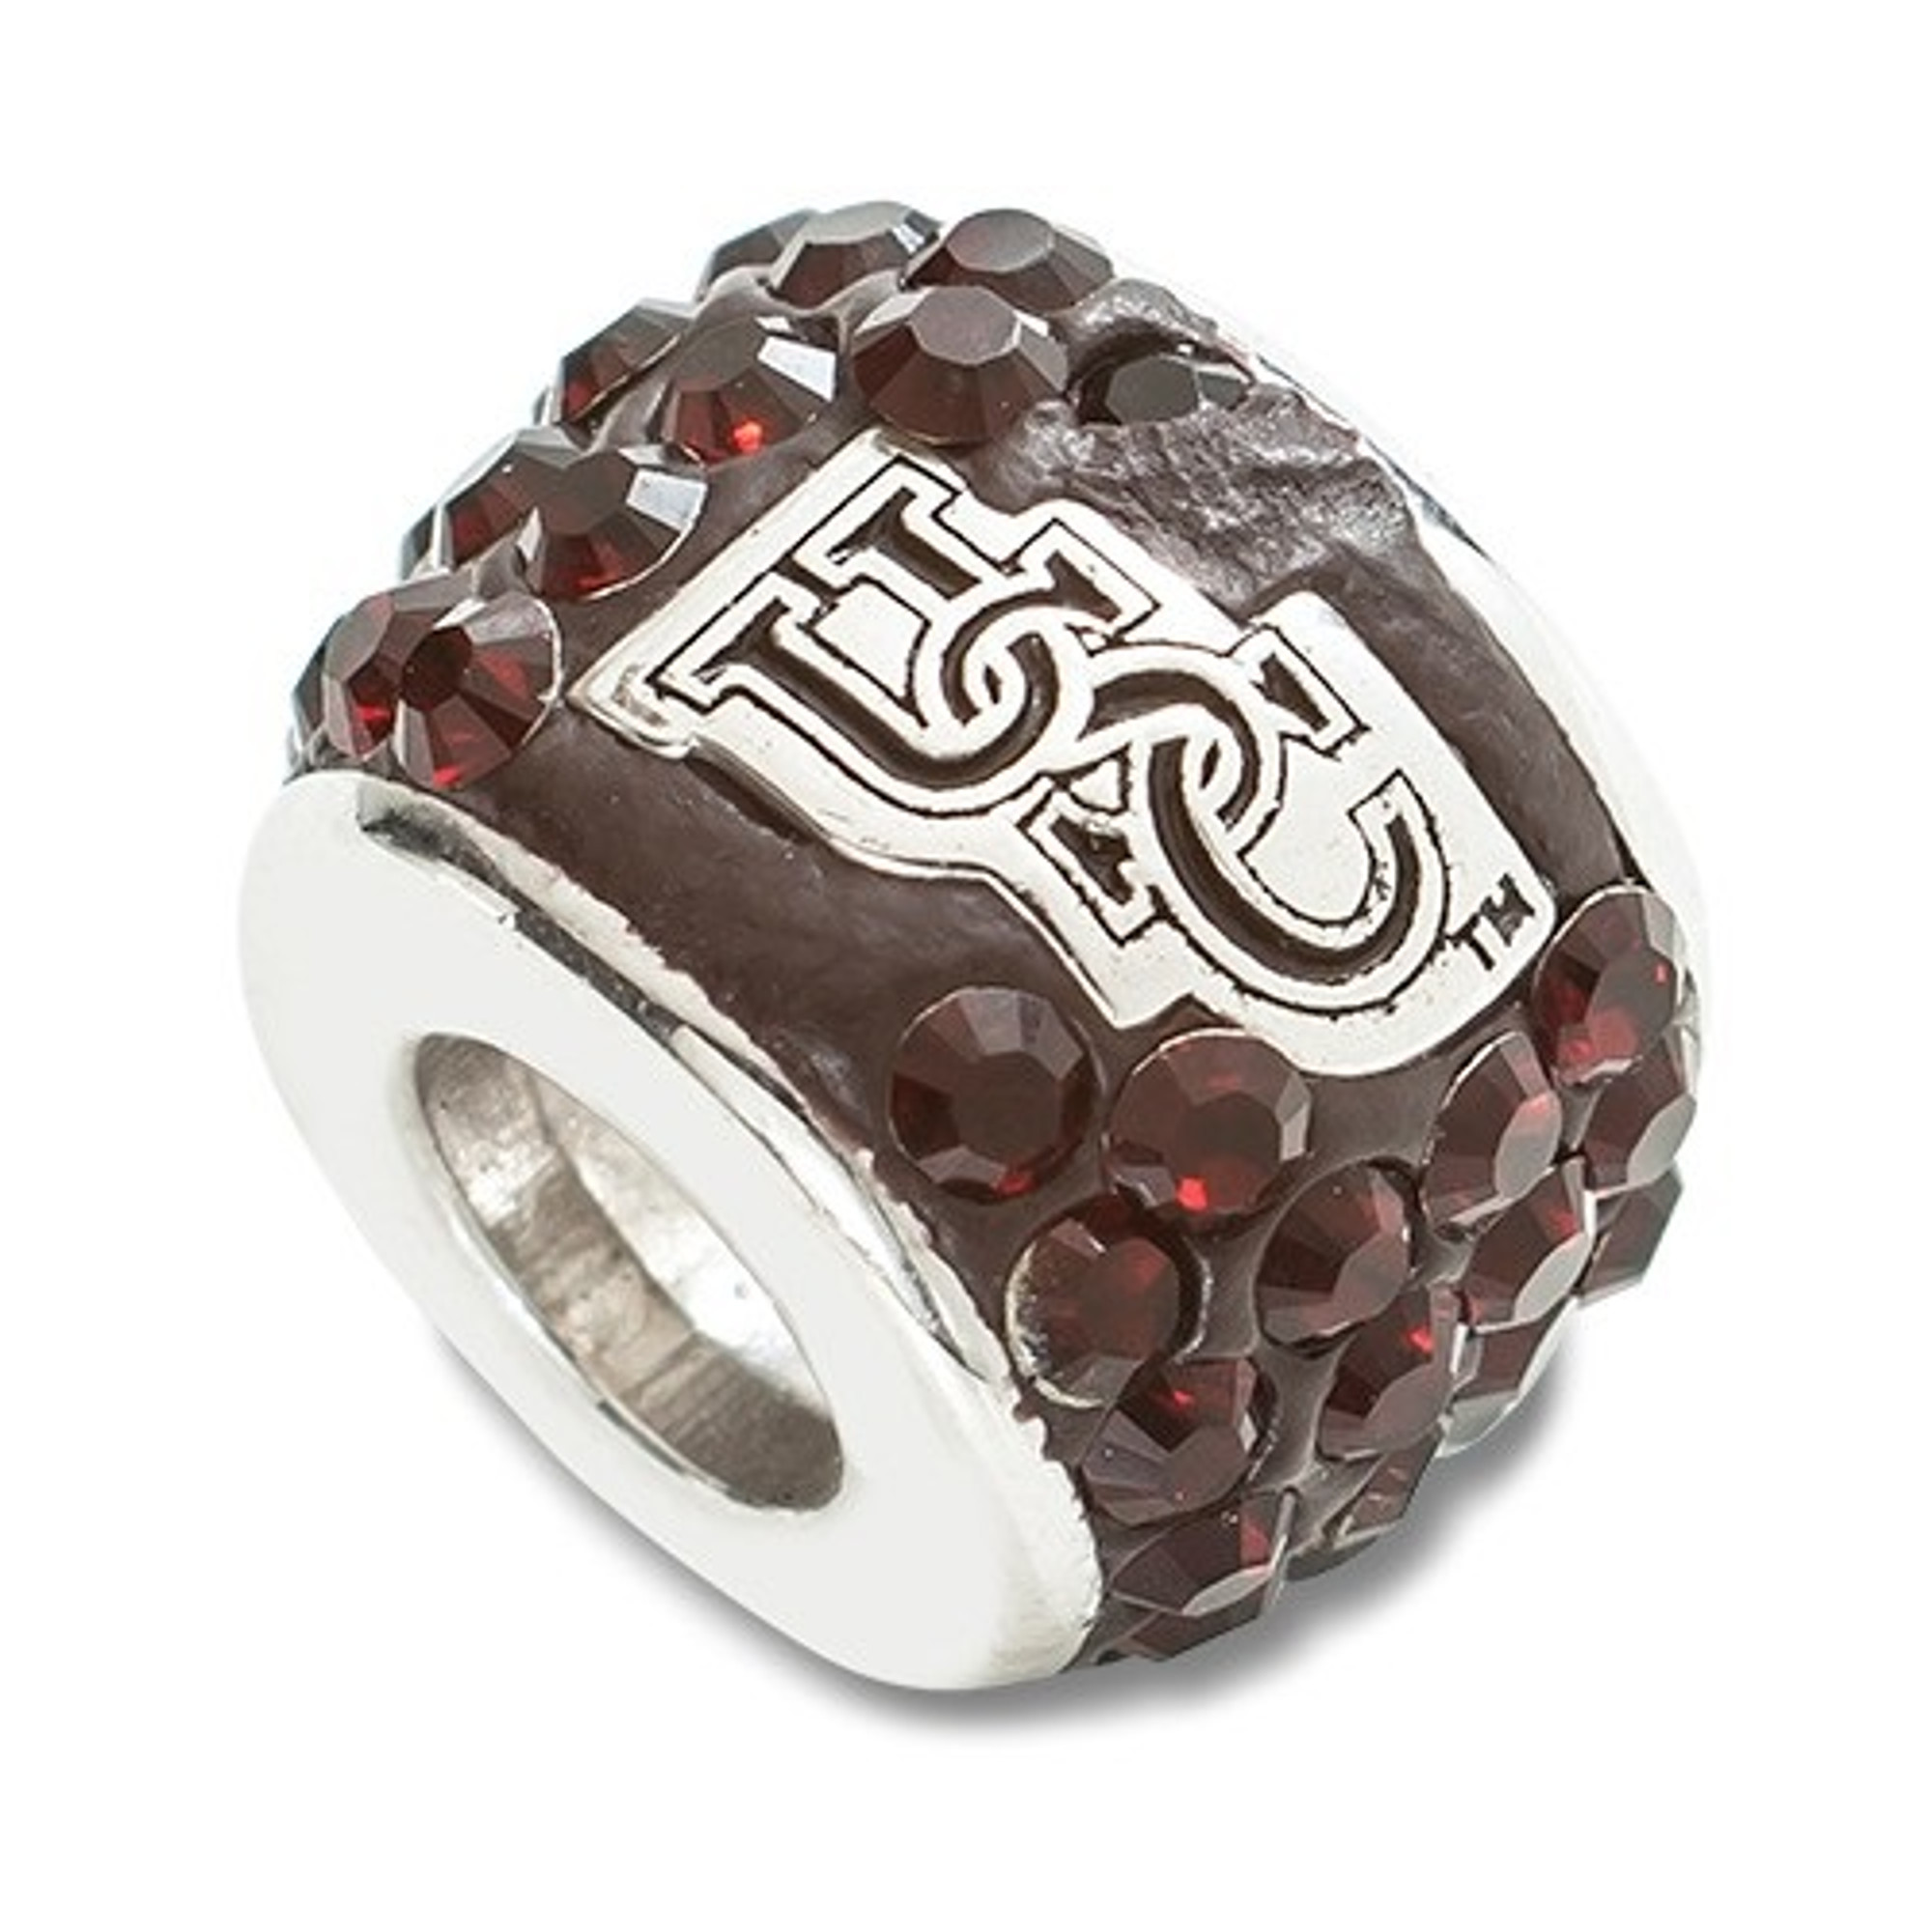 Beads Company Logo: South Carolina Gamecocks Logo Sterling Silver Bracelet